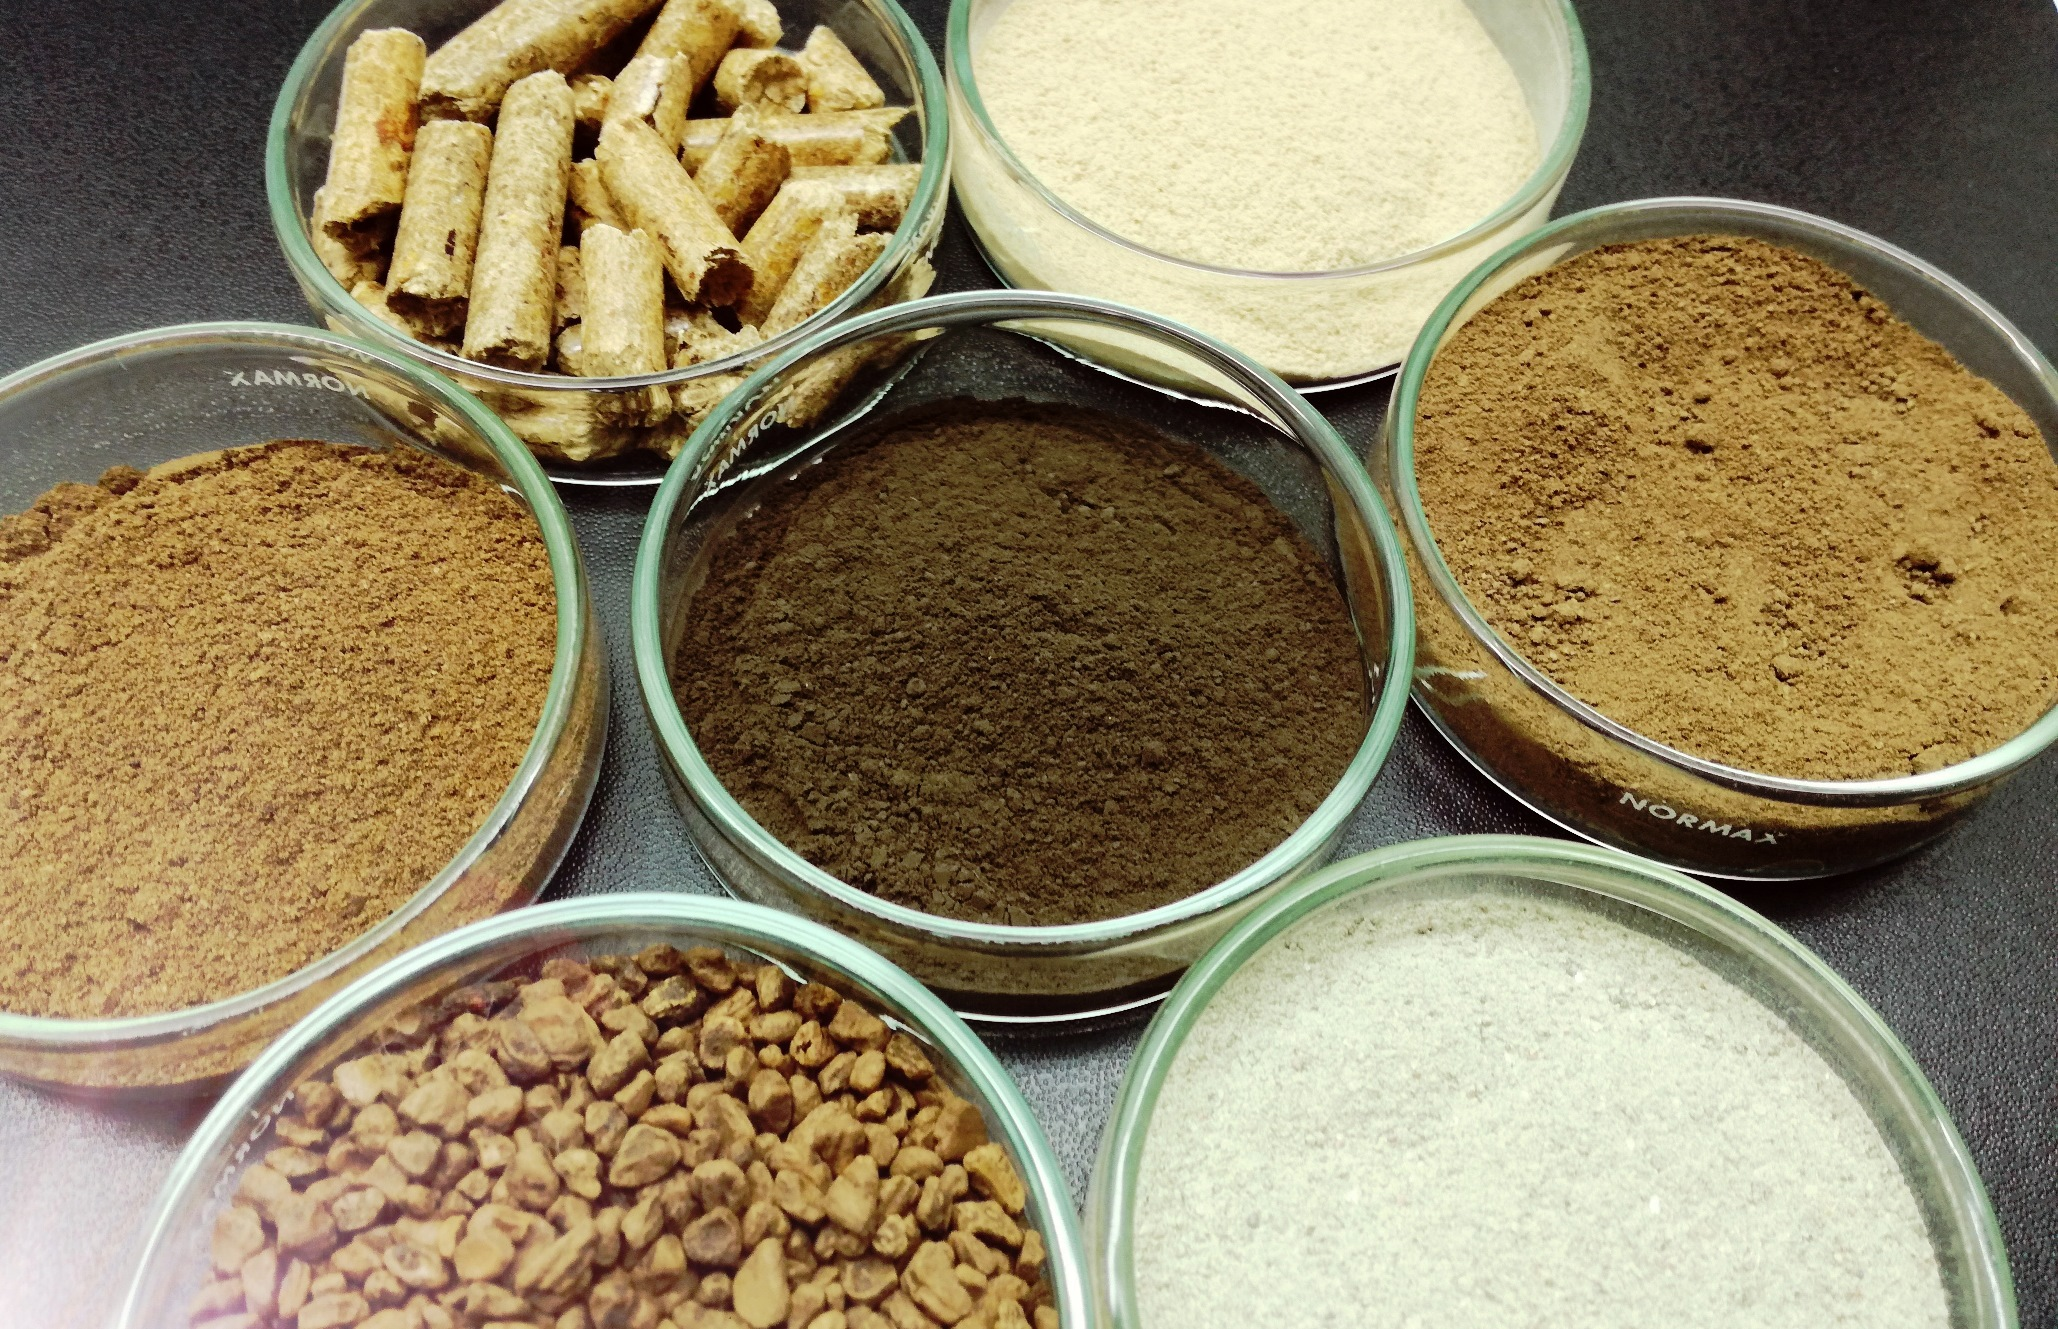 Solid biofuel and biomass